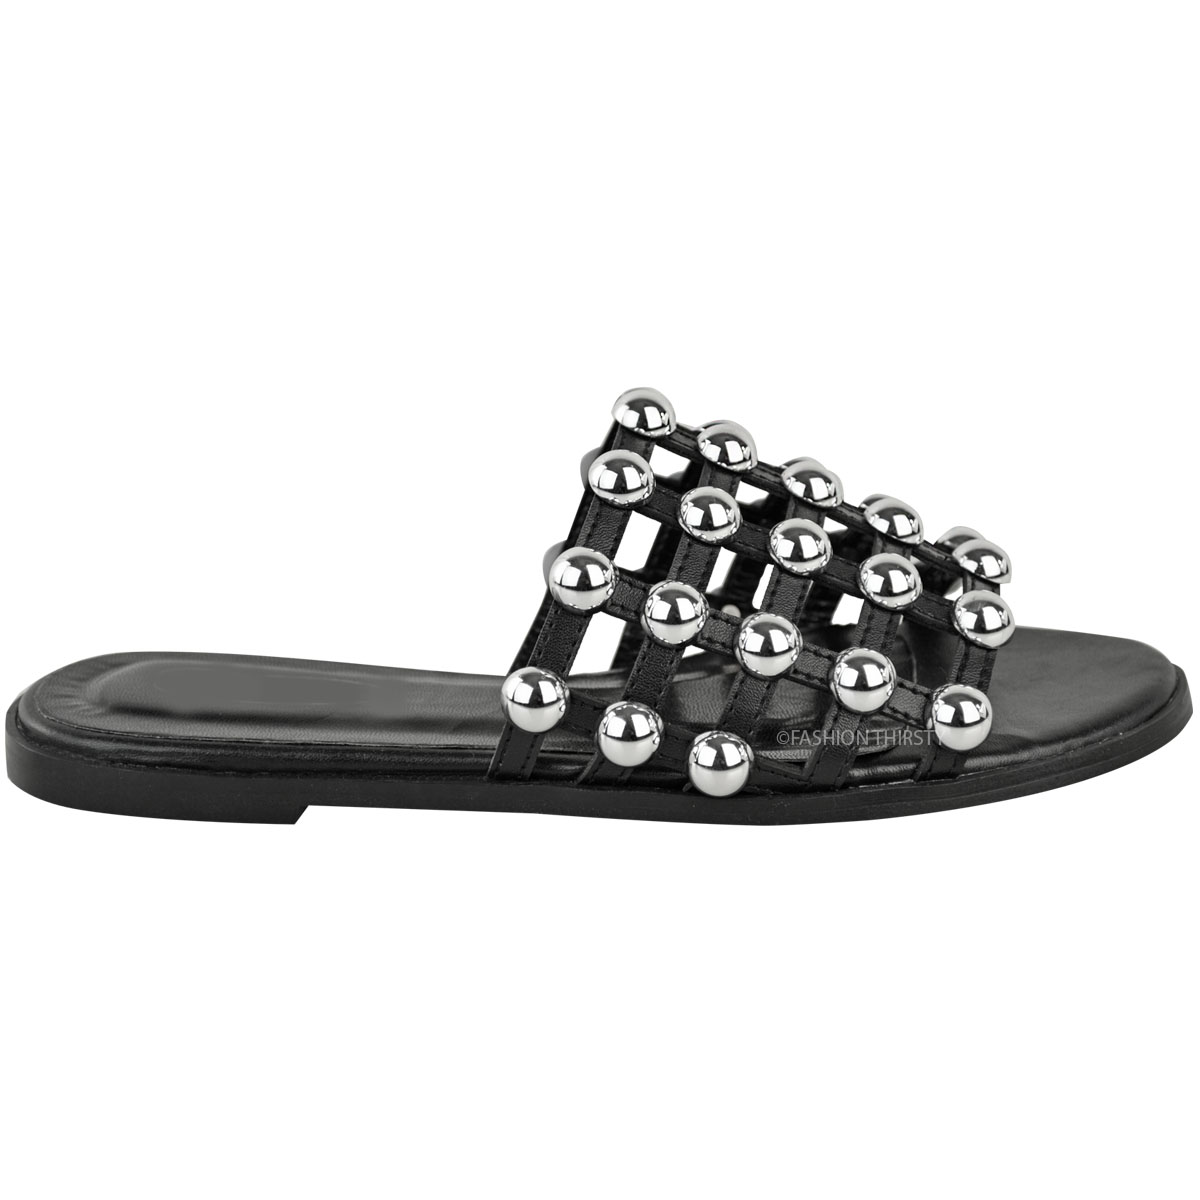 b67a6f8fbac Details about Womens Ladies Studded Slider Flat Summer Sandals Cage Slides  Bling Diamante Size